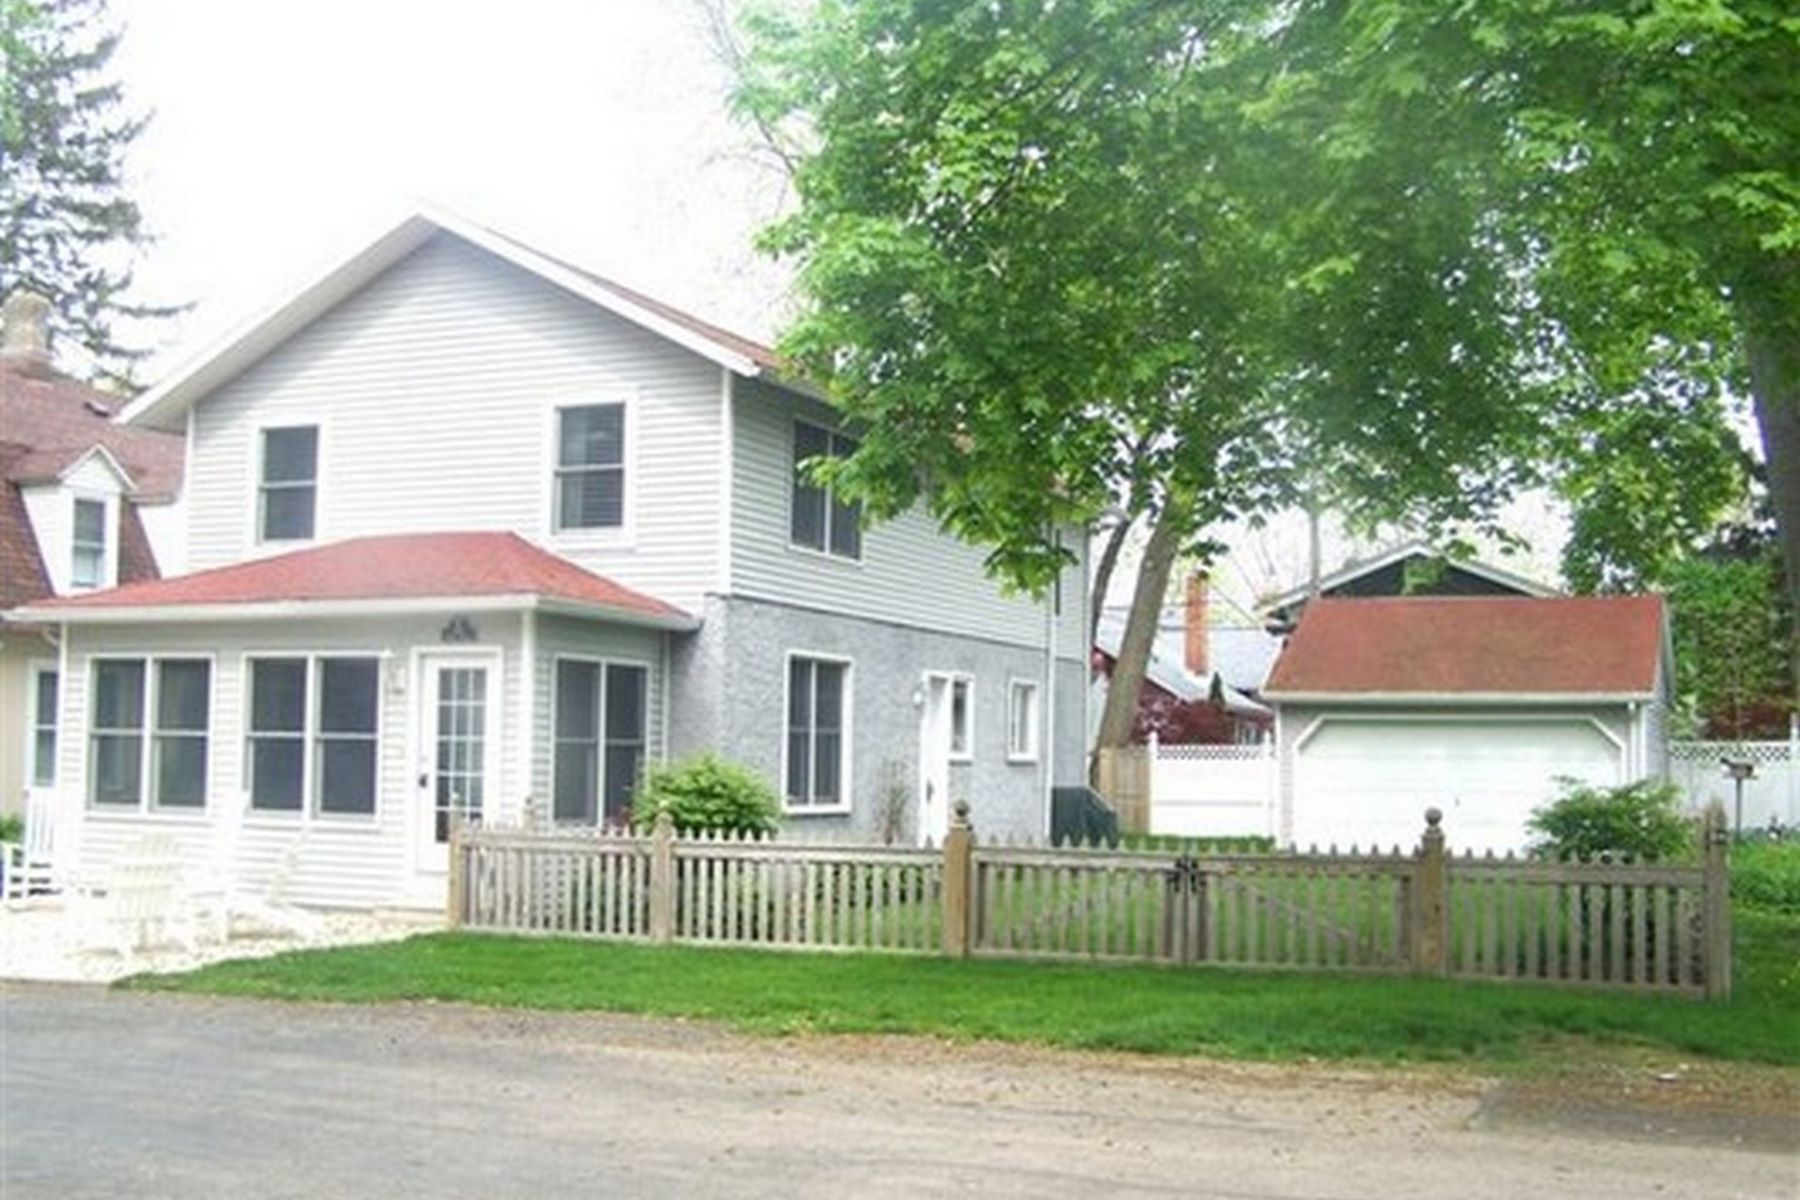 Single Family Home for Sale at 153 Laurel Avenue 153 Laurel Avenue Lakeside, Ohio 43440 United States